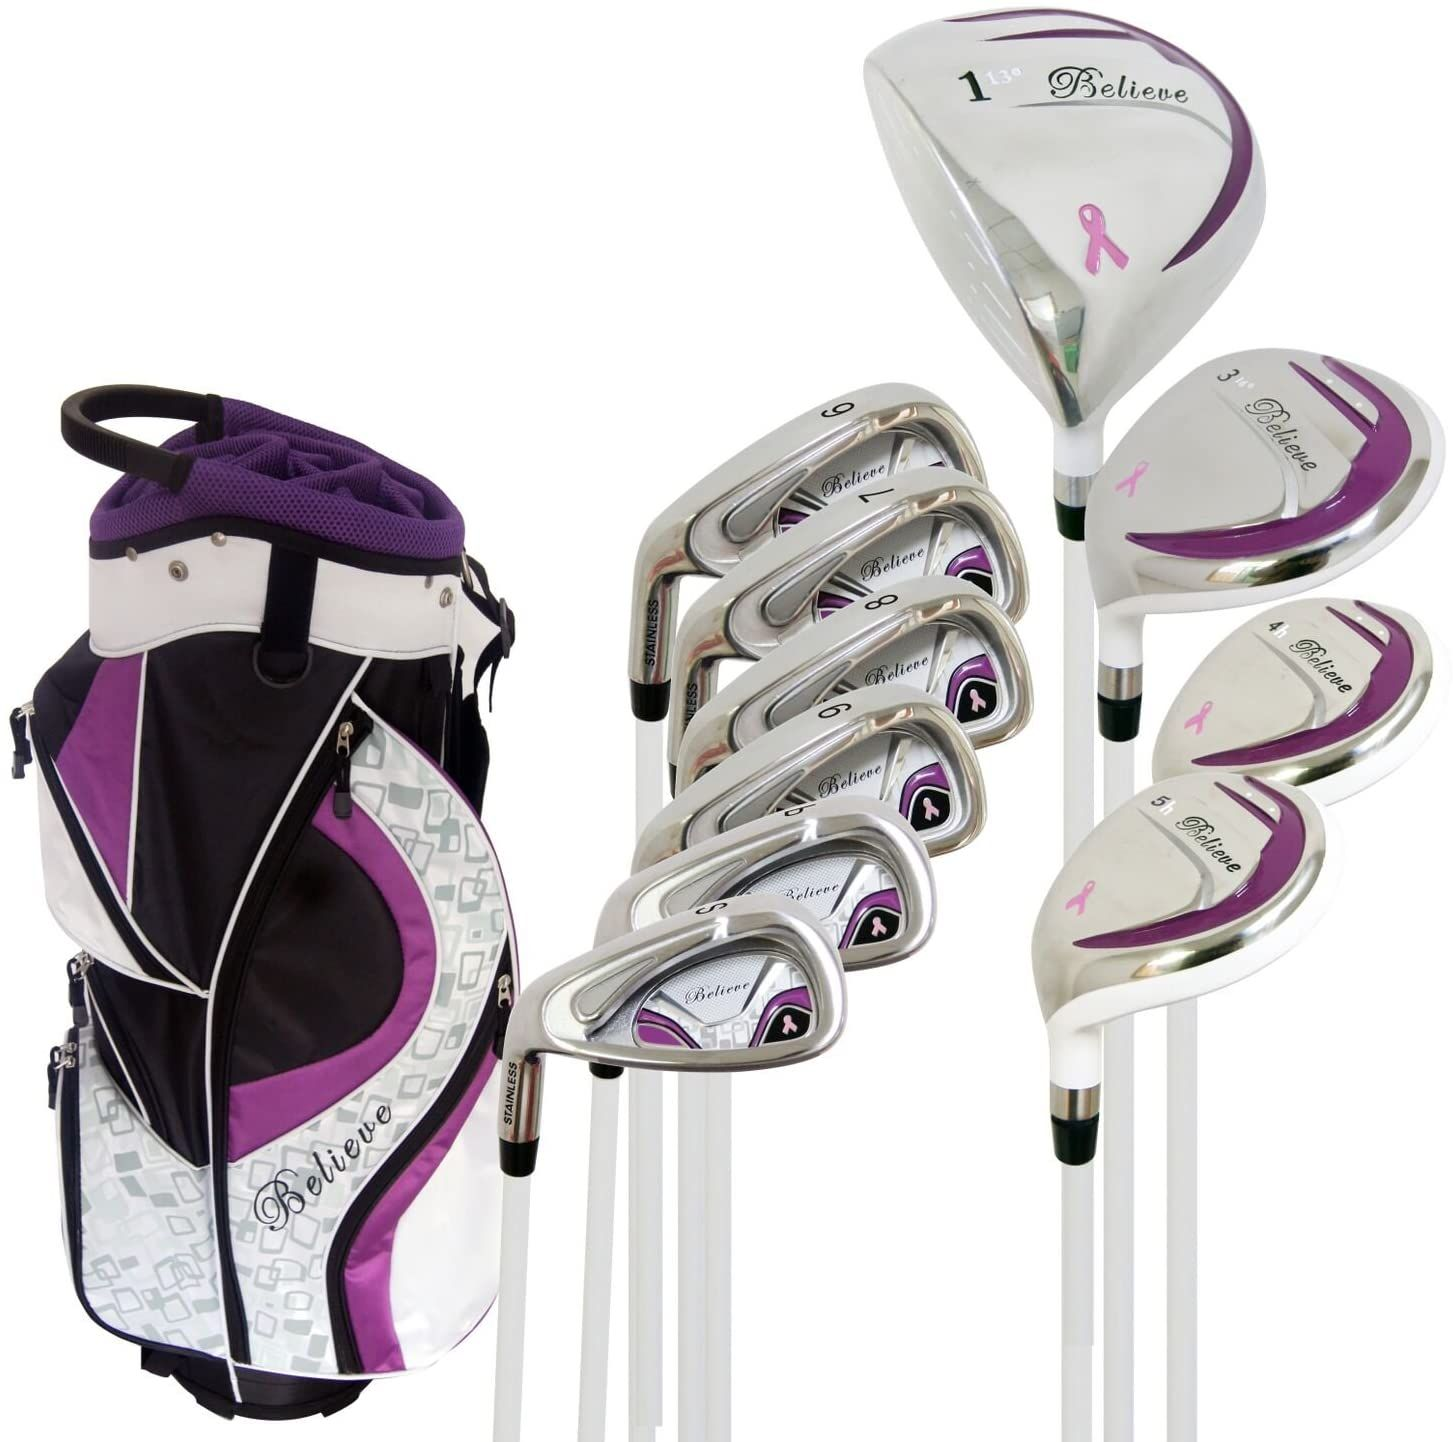 Best Golf Clubs For Seniors 2021 Best Womens Golf Clubs Review Guide For 2021   Report Outdoors in